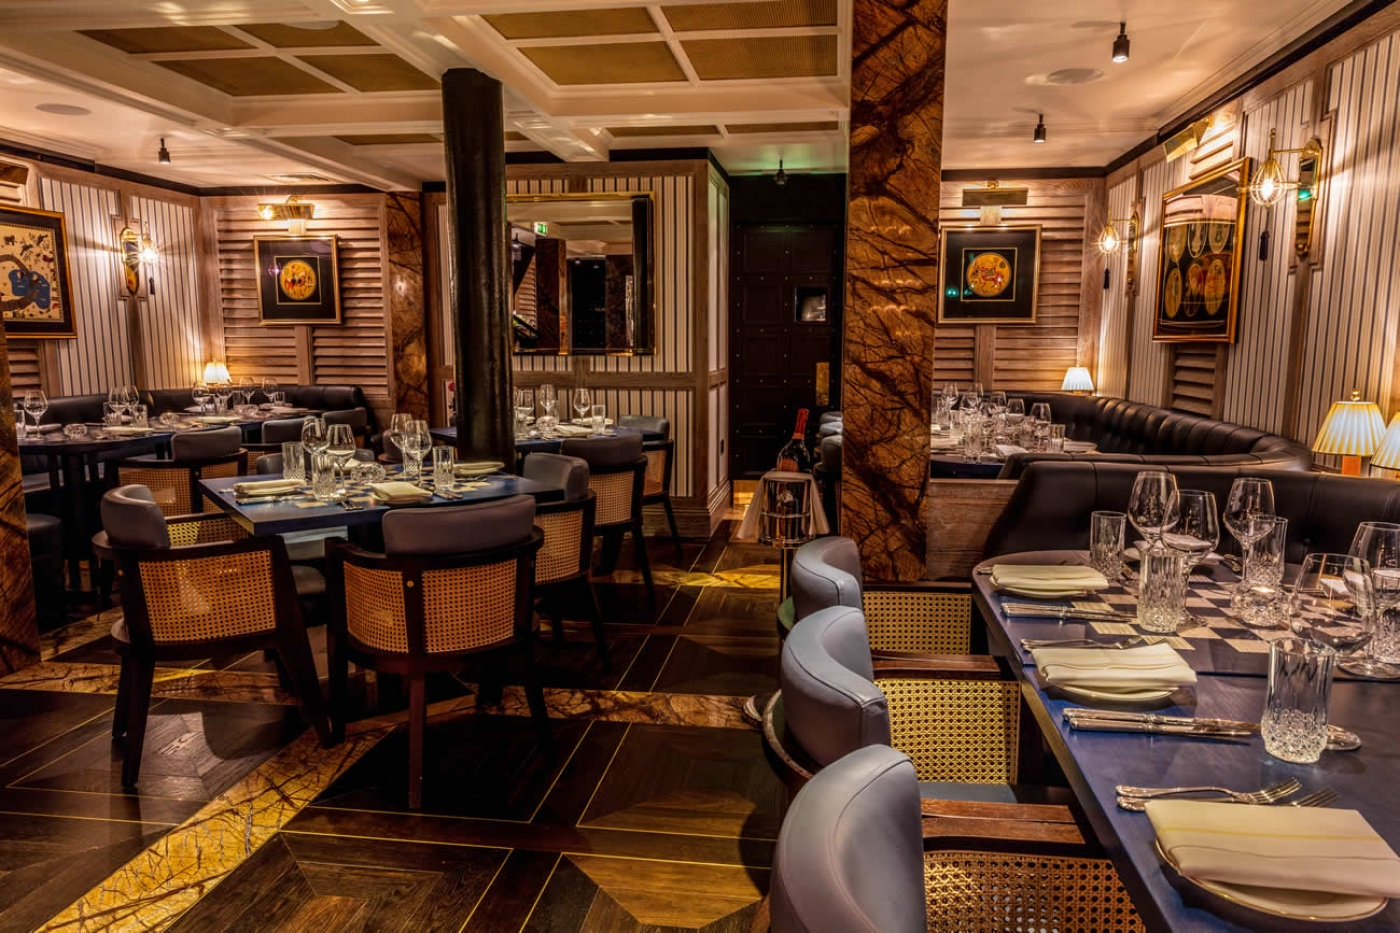 The Culinary Jewel Of The Leela Comes To Mayfair Berkeley